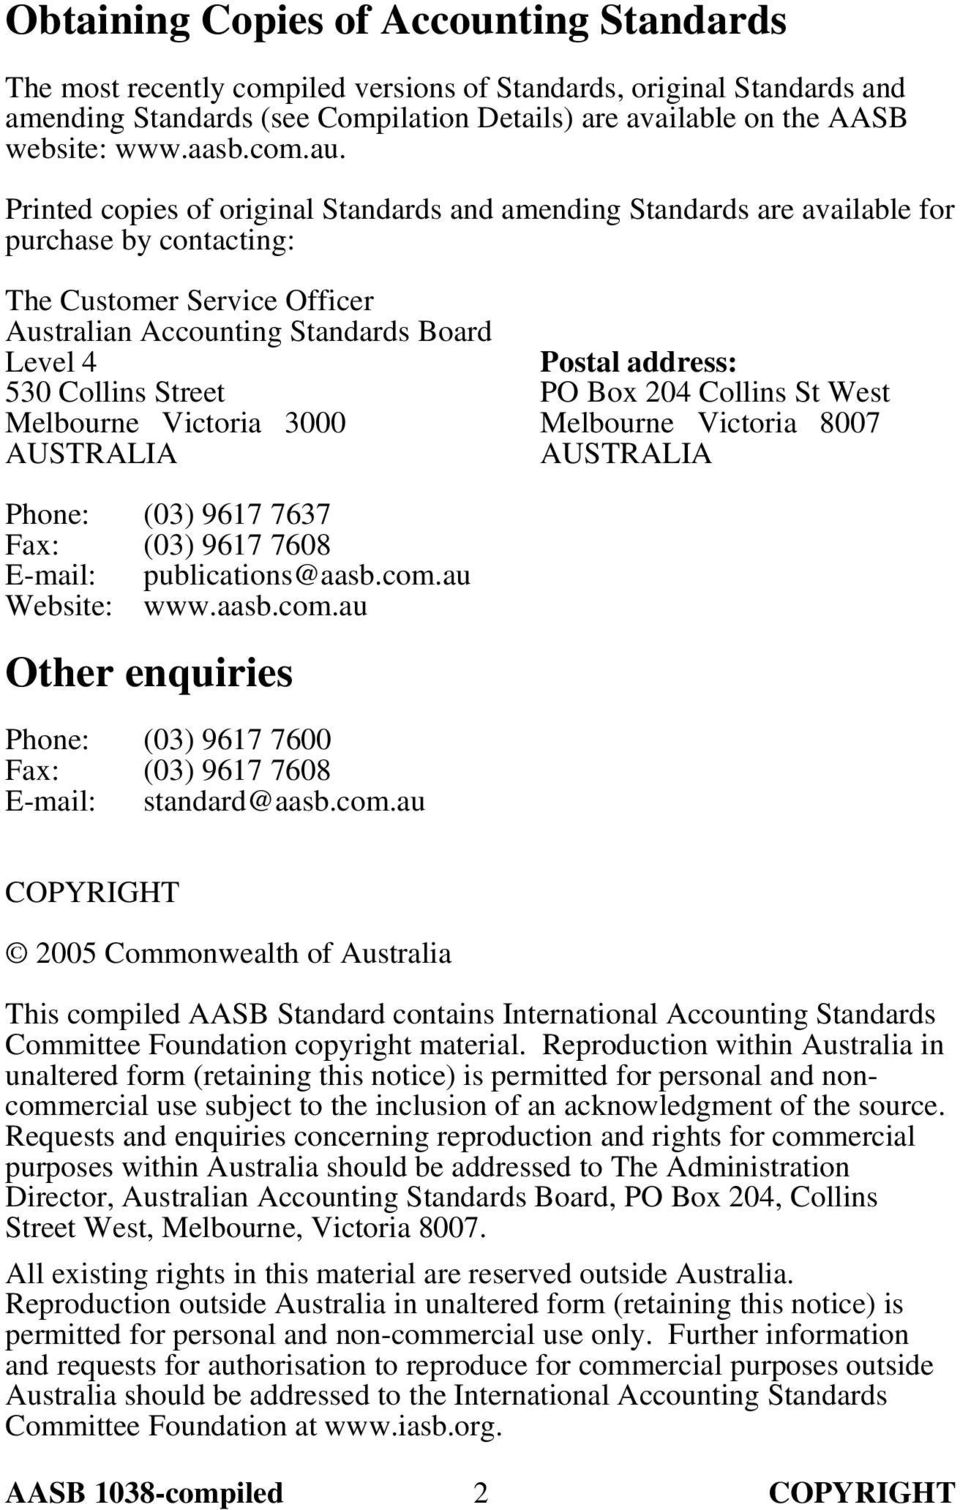 Printed copies of original Standards and amending Standards are available for purchase by contacting: The Customer Service Officer Australian Accounting Standards Board Level 4 530 Collins Street